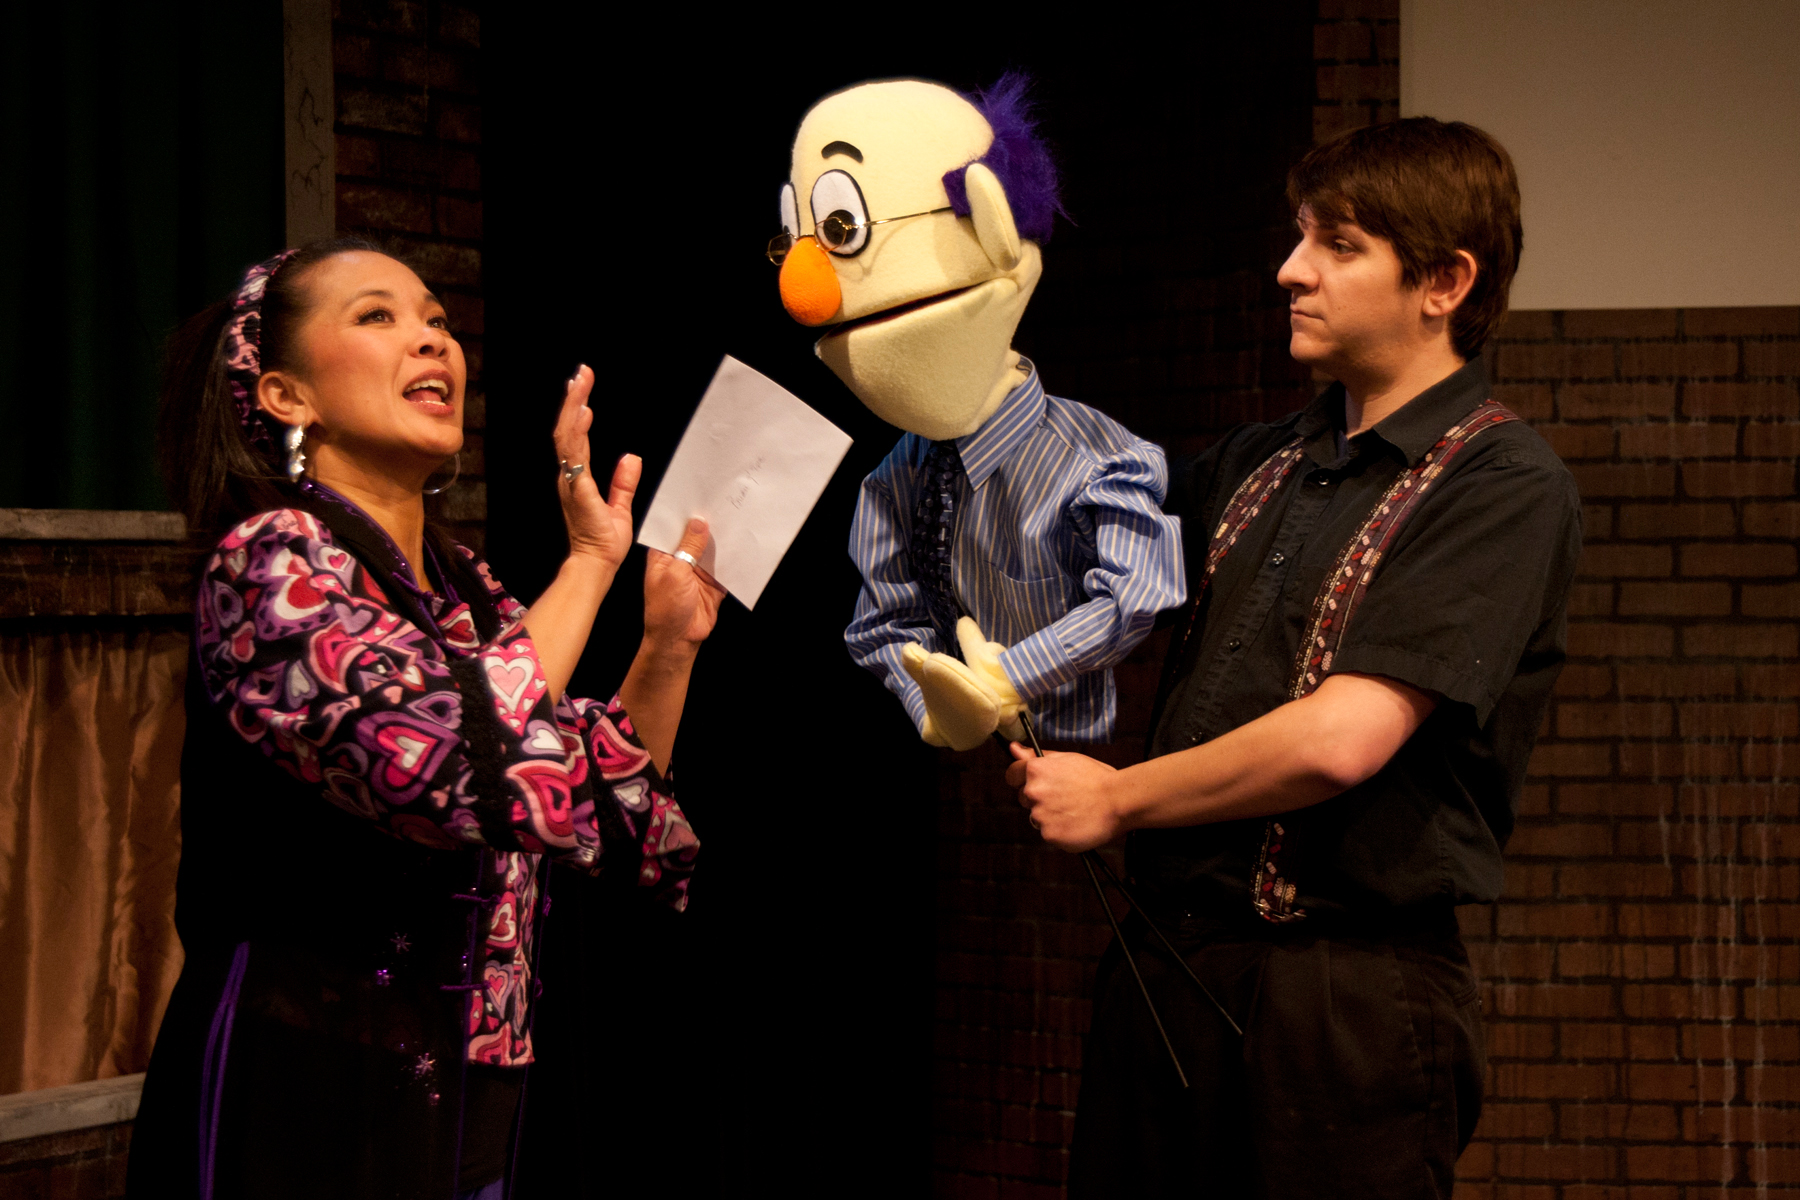 Avenue Q Christmas Eve.Review Vintage Makes The Inanimate Intimate In Avenue Q